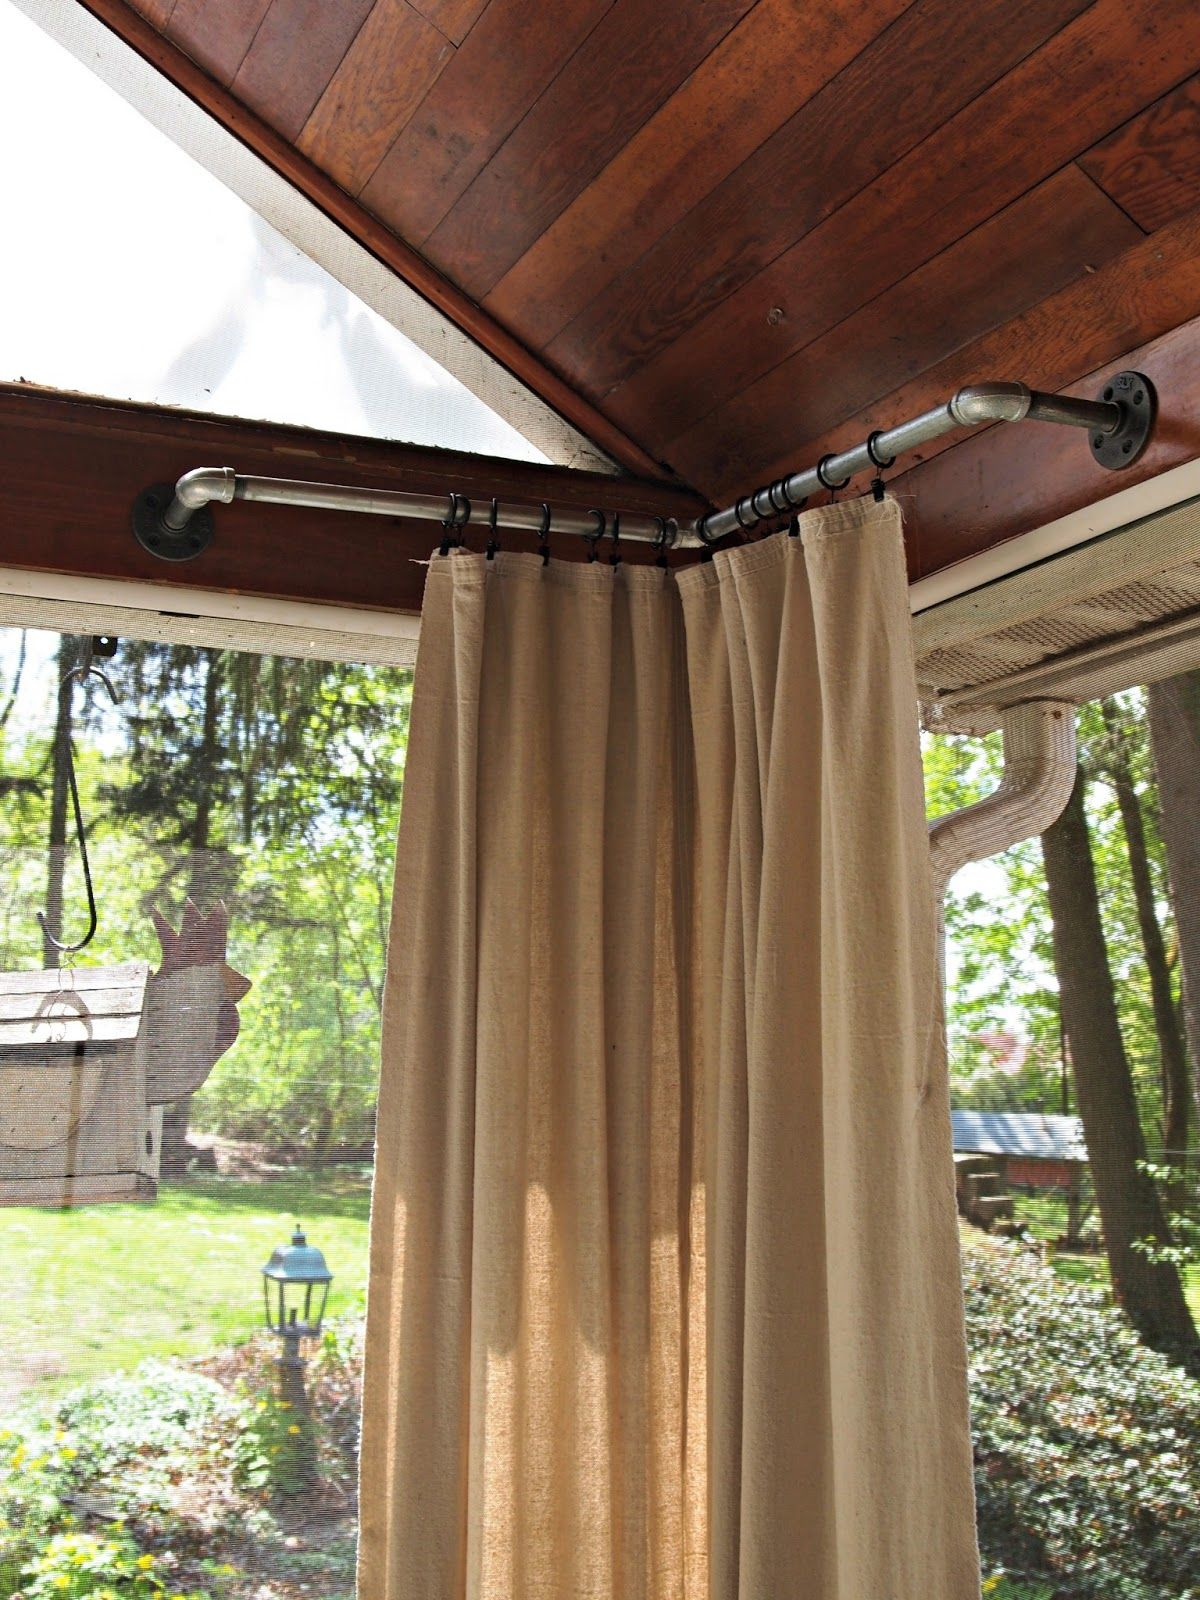 I Think Want To Add Curtain The Front Porch